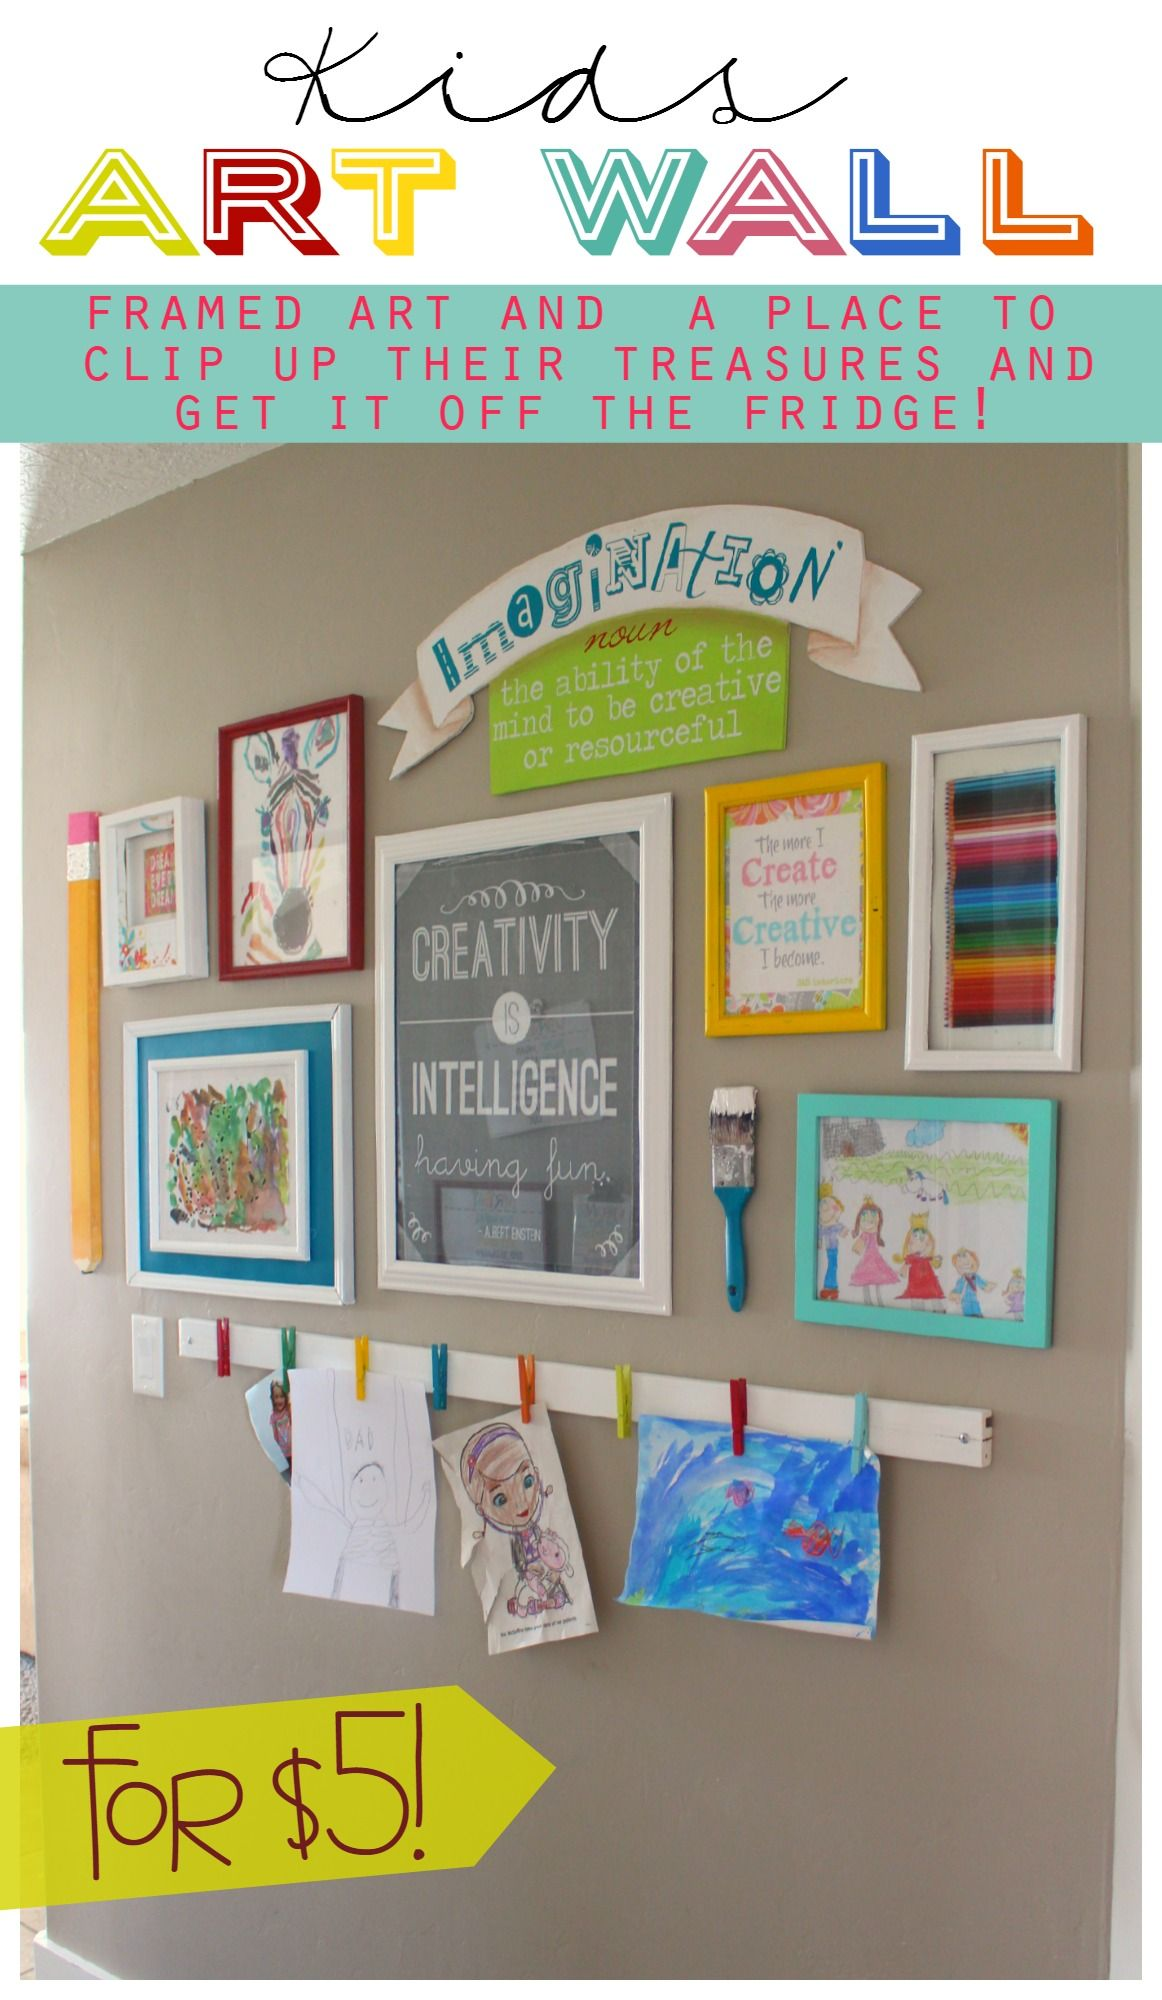 Kids Art Wall | Framed art and a place to clip up the kidsu0027 treasures and get it off the fridge.  sc 1 st  Pinterest & the evolution of an art wall | Pinterest | Kids art walls Art walls ...